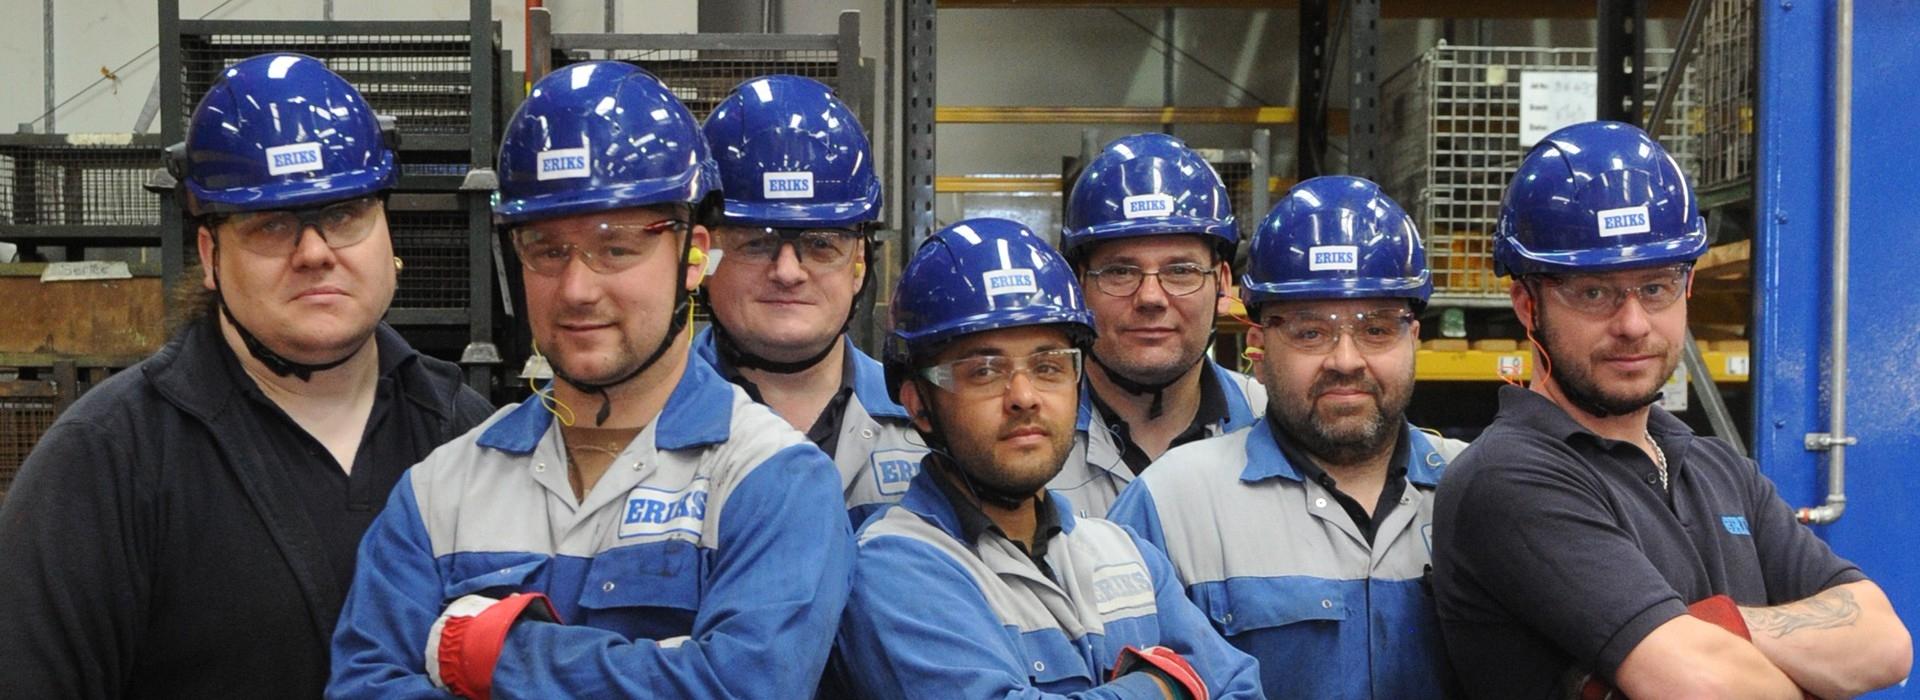 Employees in PPE Safety hats,Glasses and Gloves